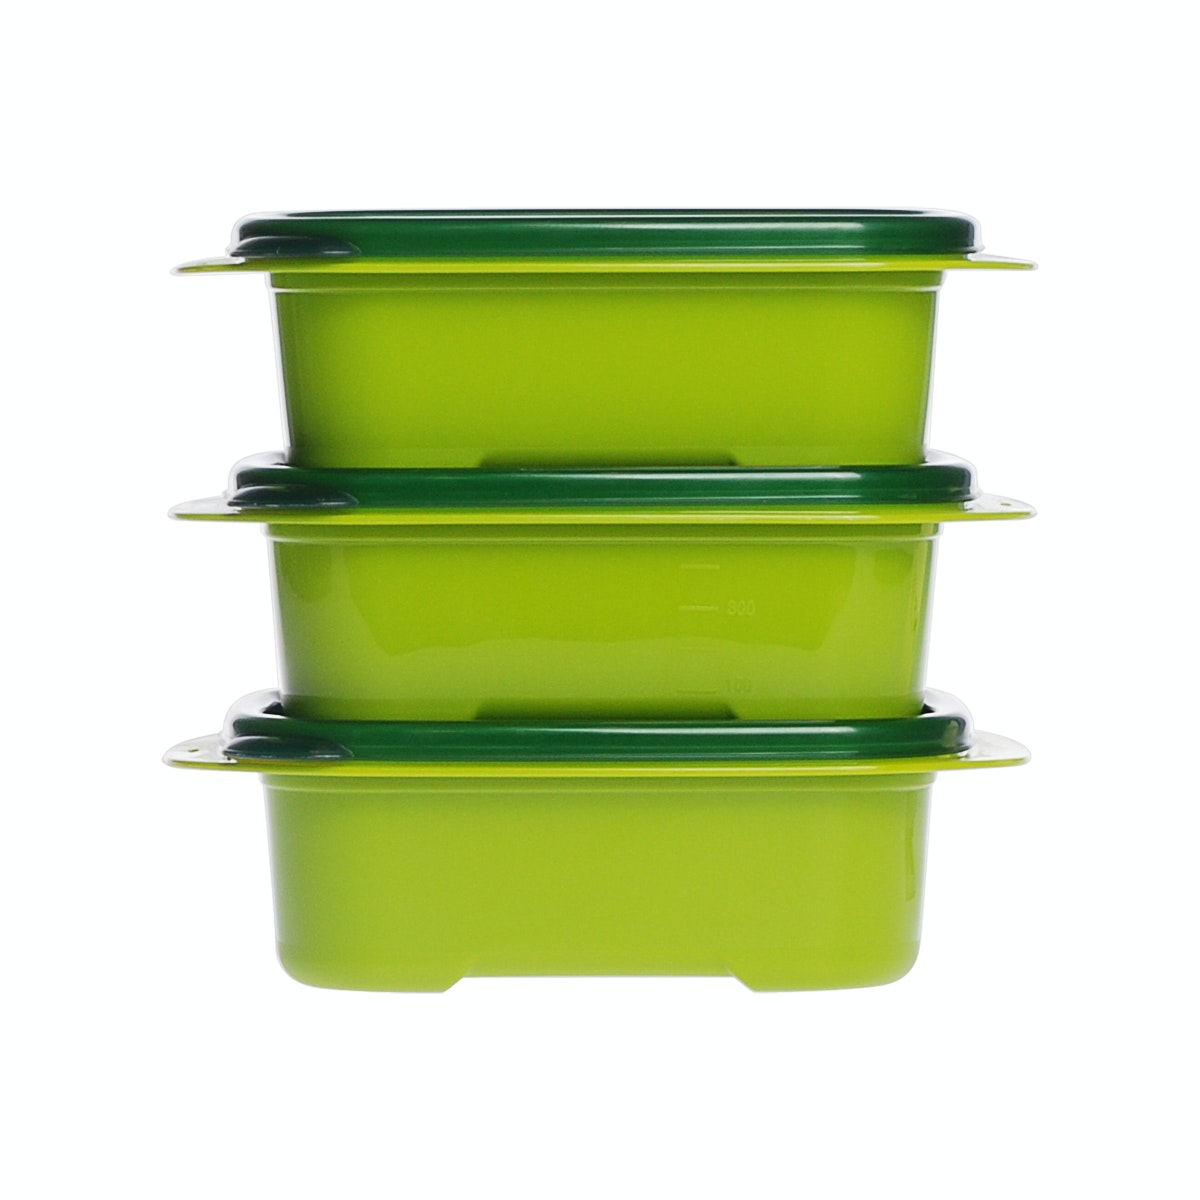 Informa Kay Food Container Rect 600Ml Grn Set 3